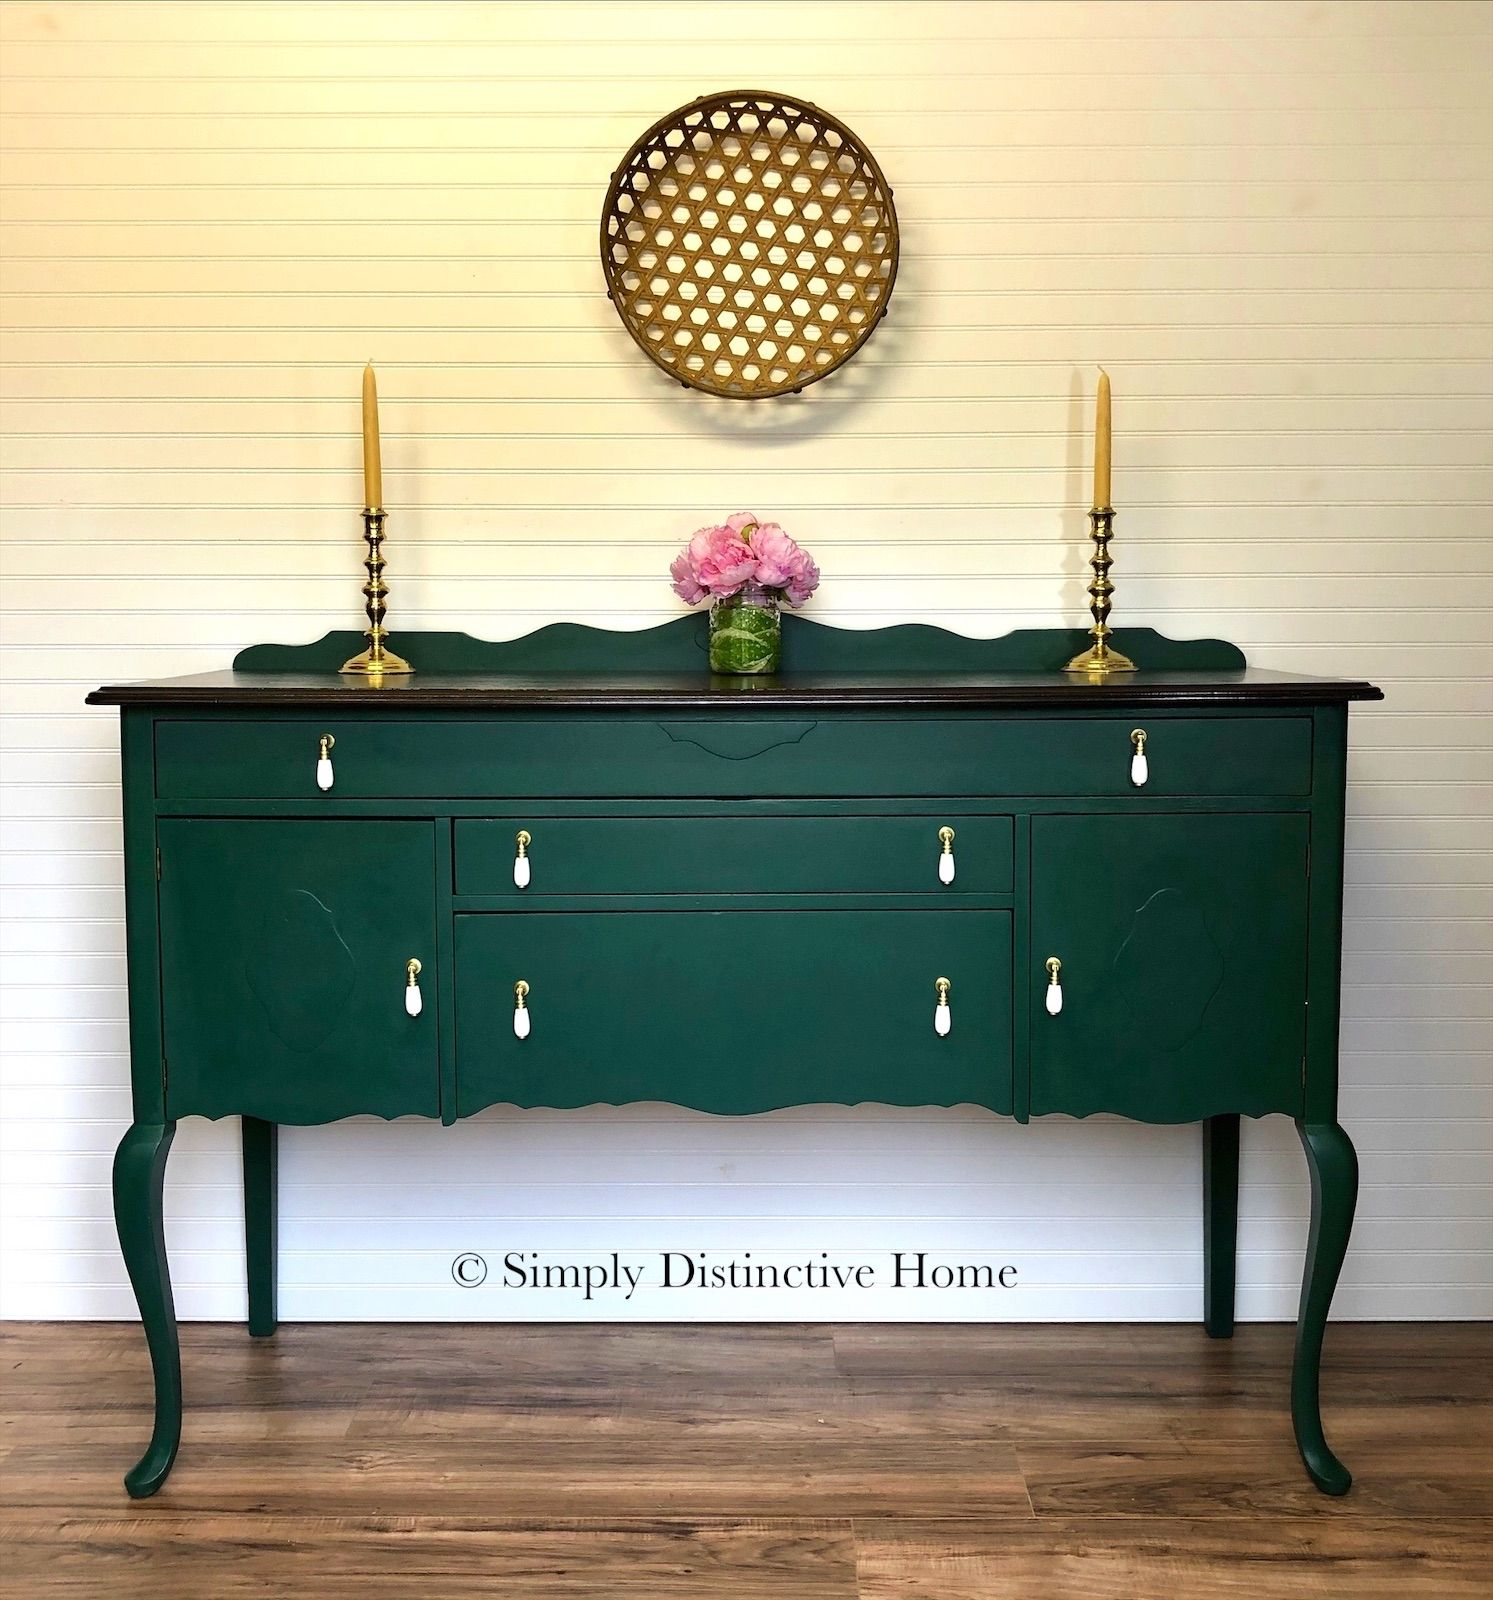 Pin On SDH Refinished Projects